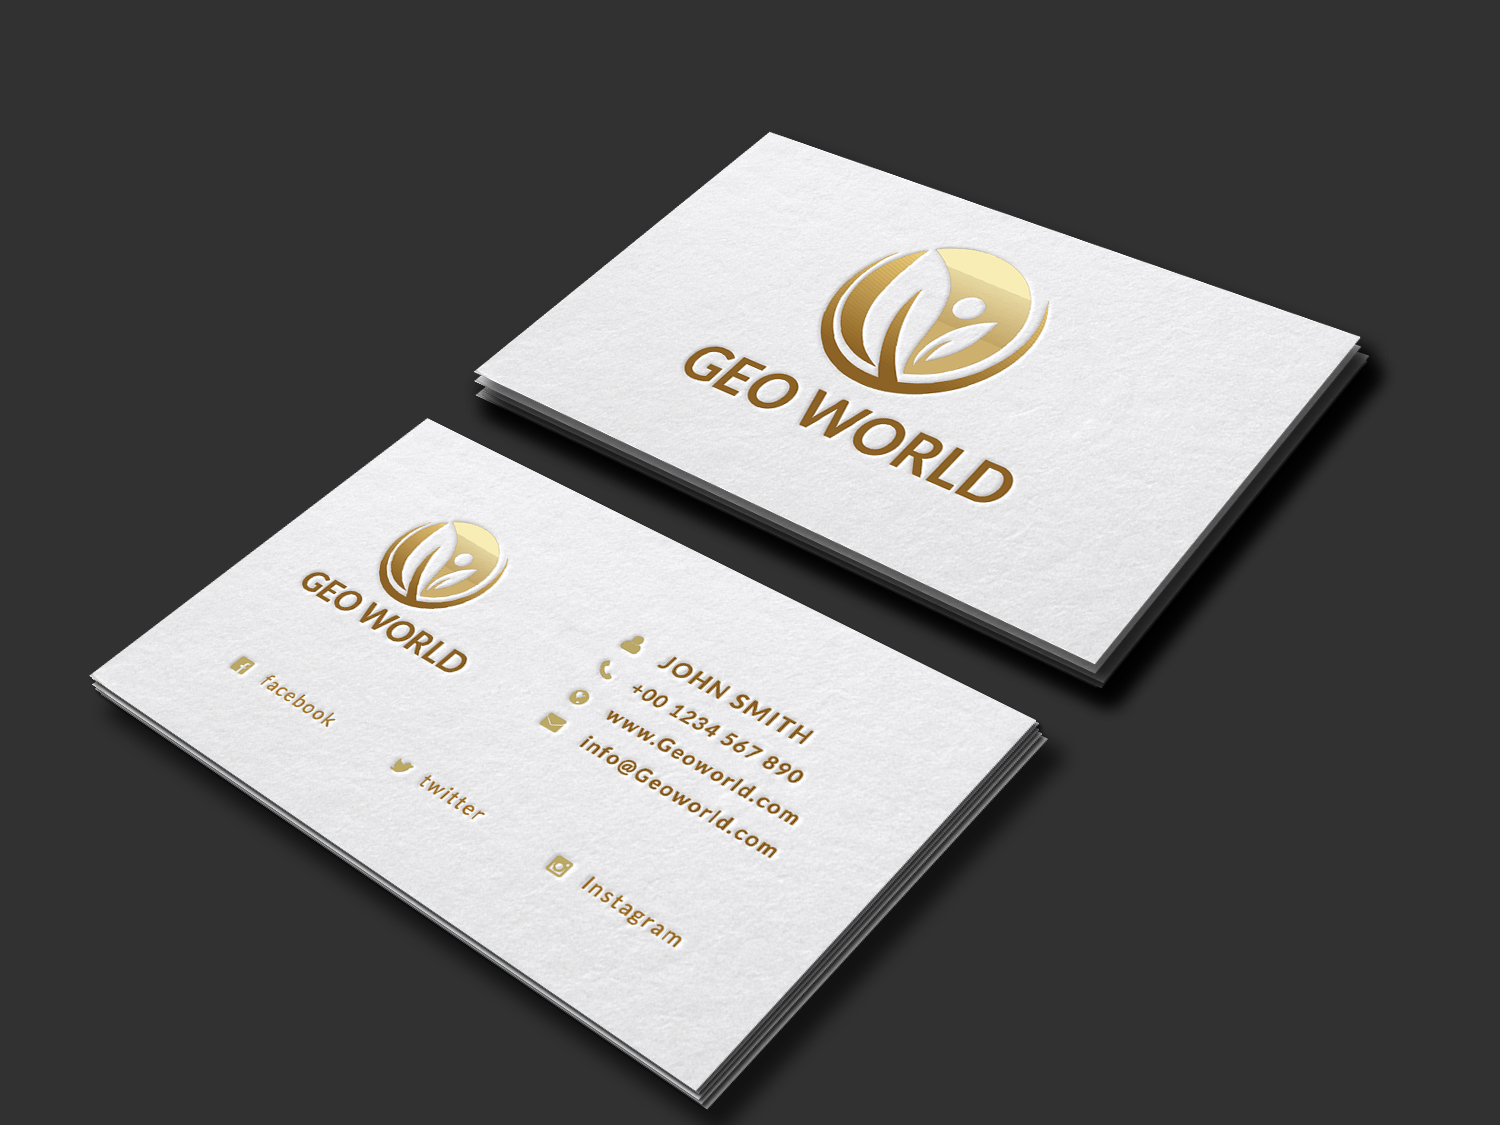 Minimalistic golden business card by we design bundles minimalistic golden business card example image 1 reheart Gallery